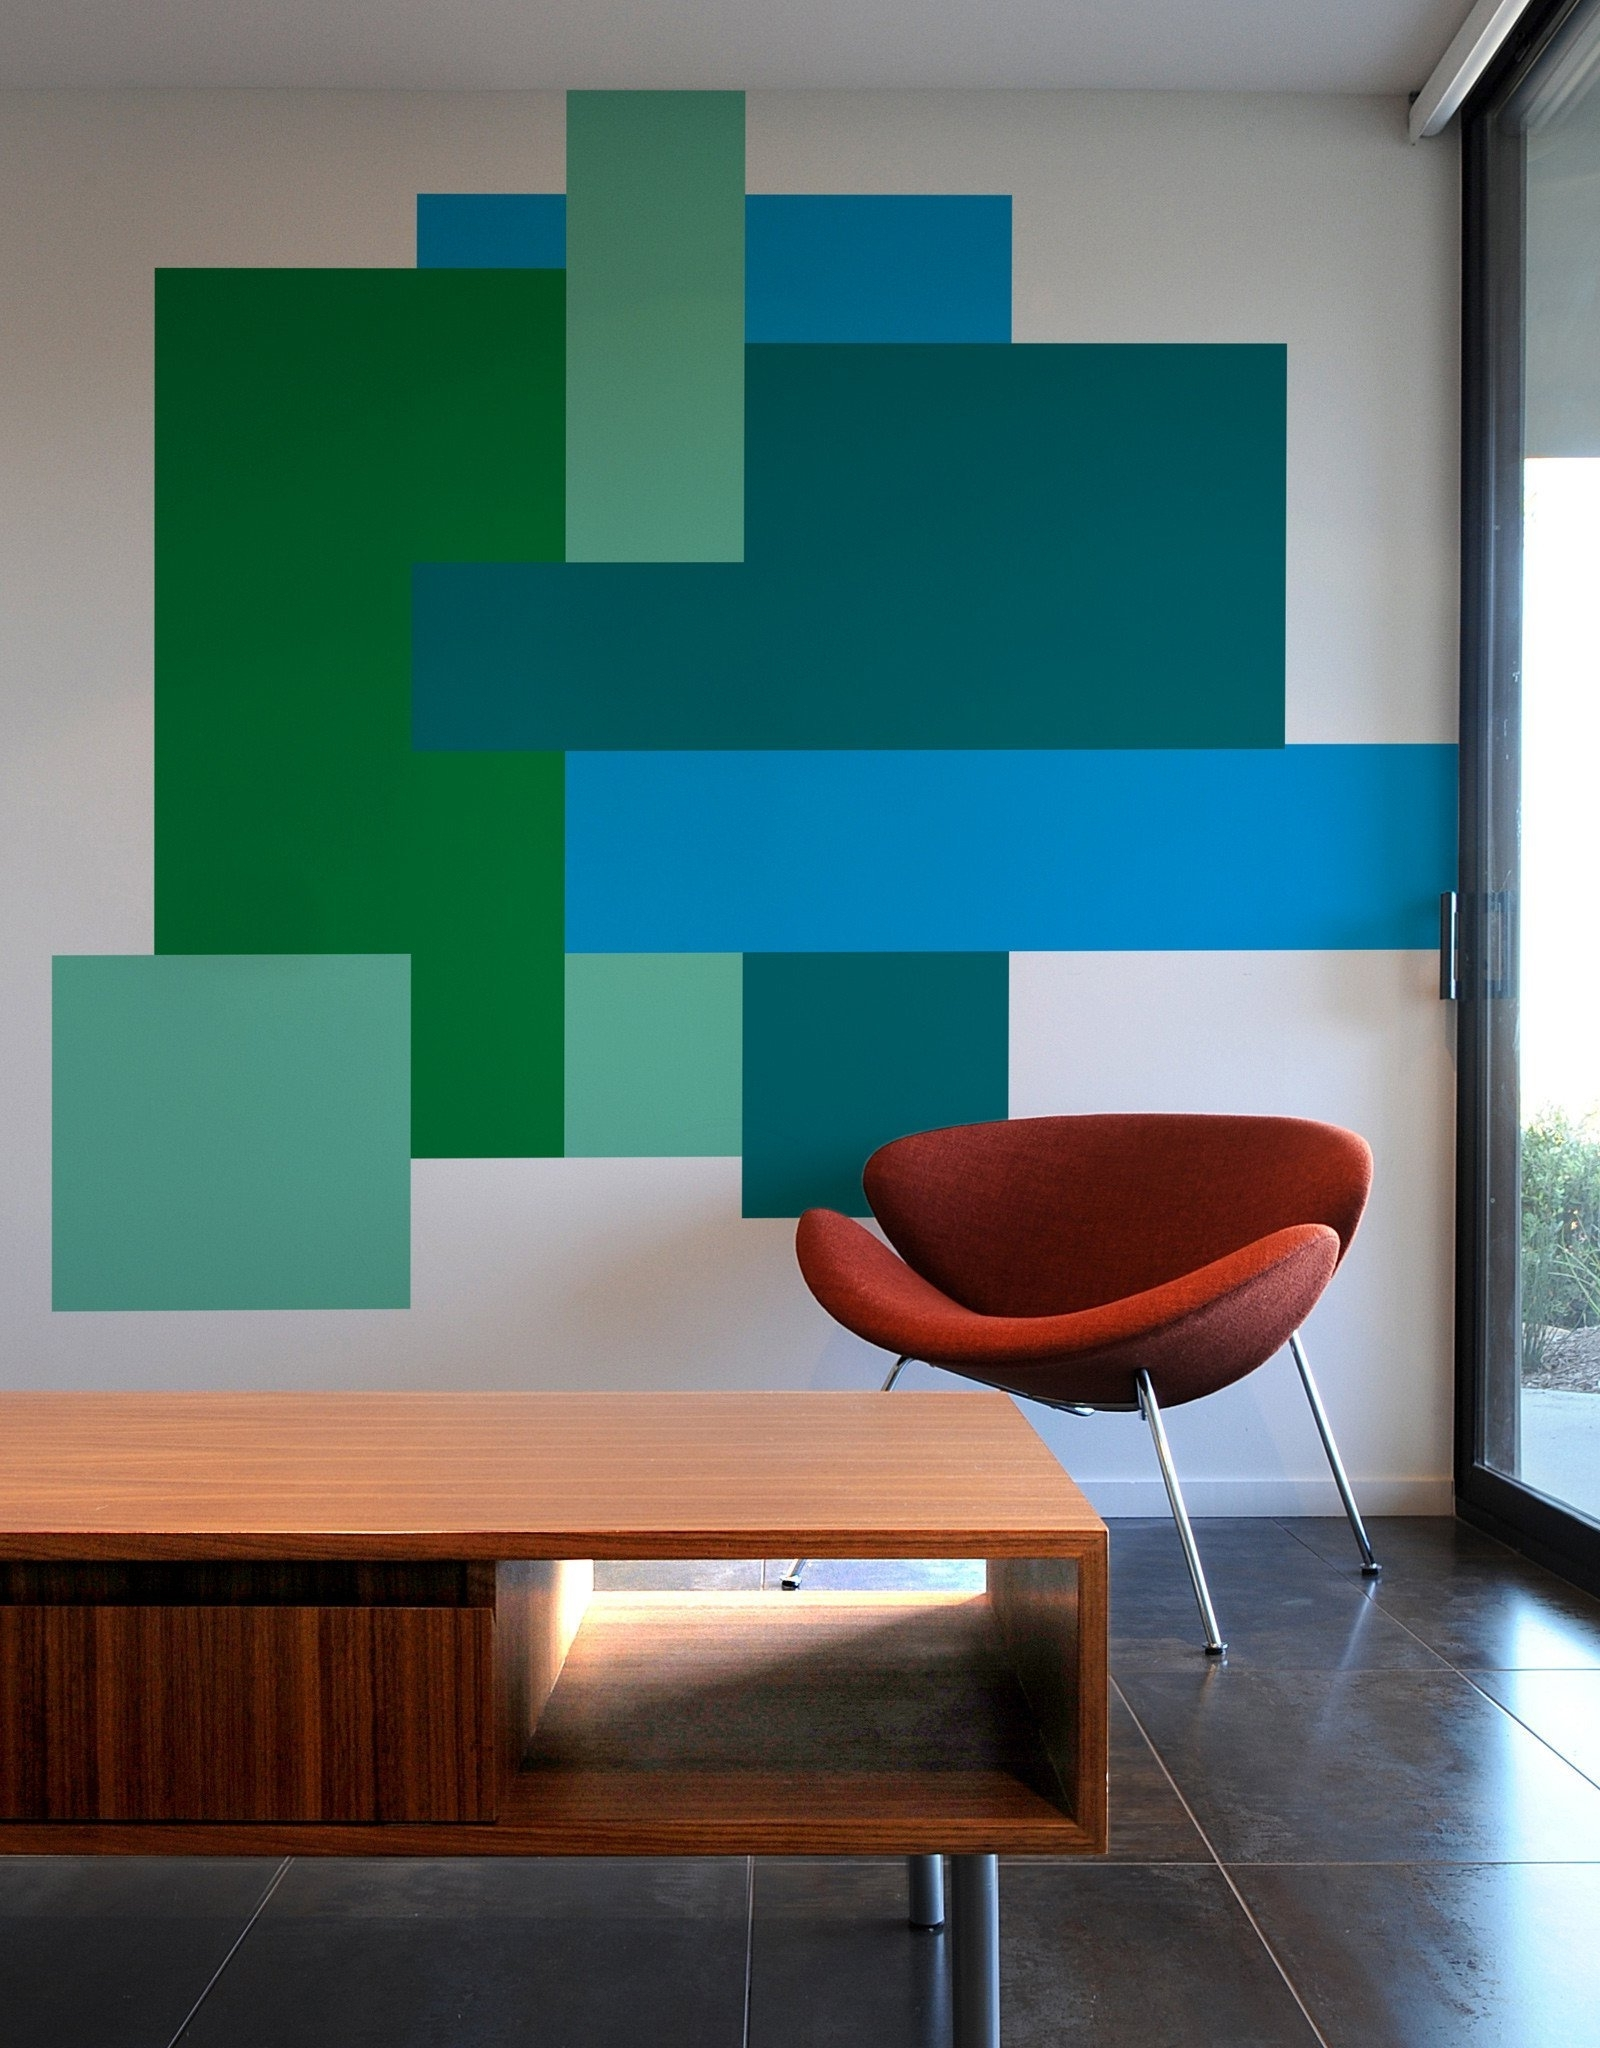 Unbelievable Color Block Wall Art Self Adhesive Vinyl Stickers Inside Popular Blik Wall Art (View 12 of 15)